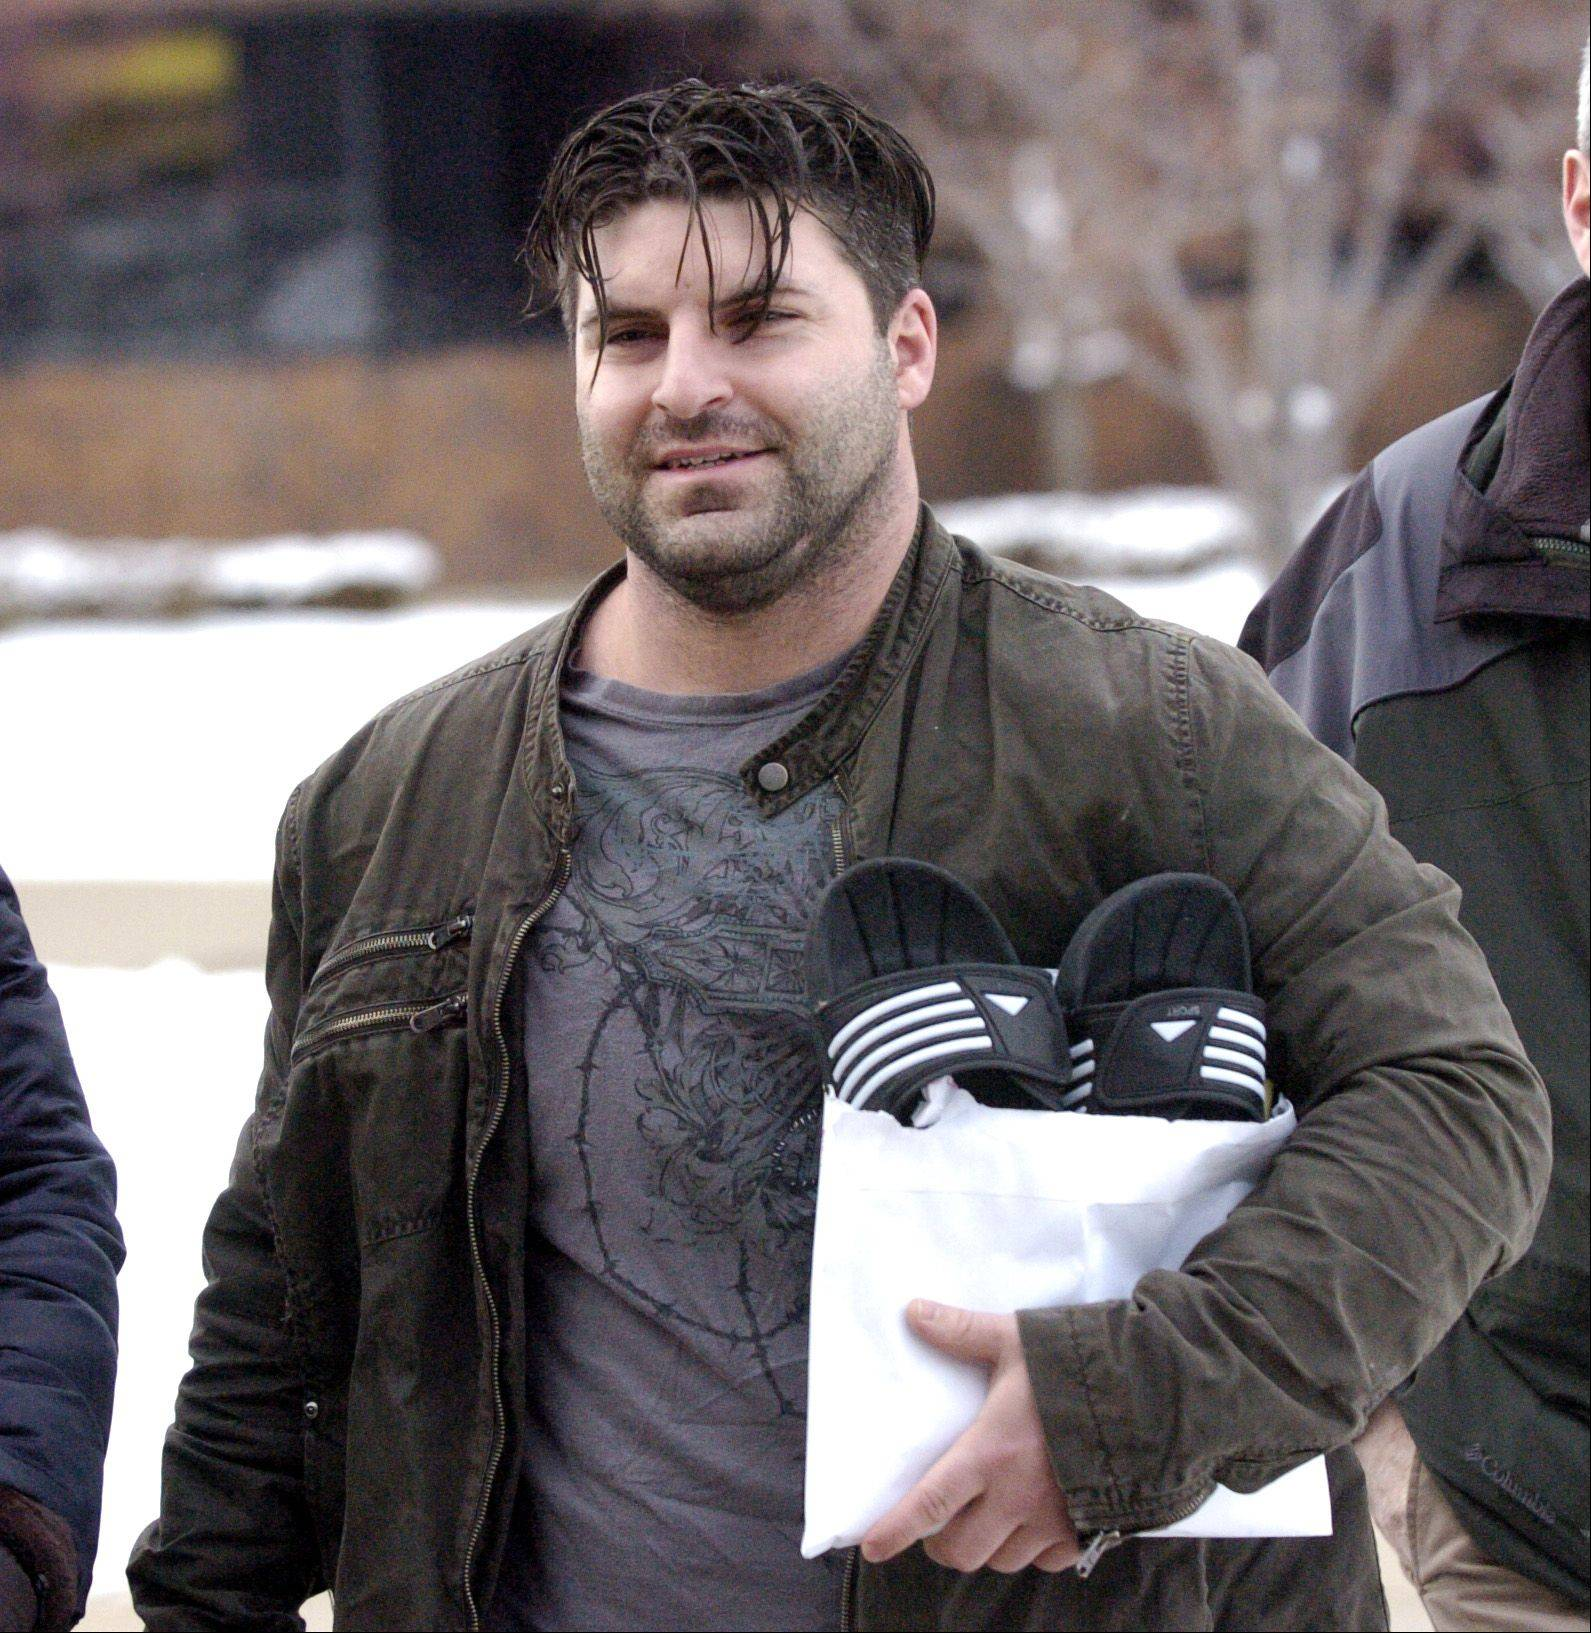 Former Schaumburg police officer Matthew Hudak leaves DuPage County Jail after posting bond Monday.